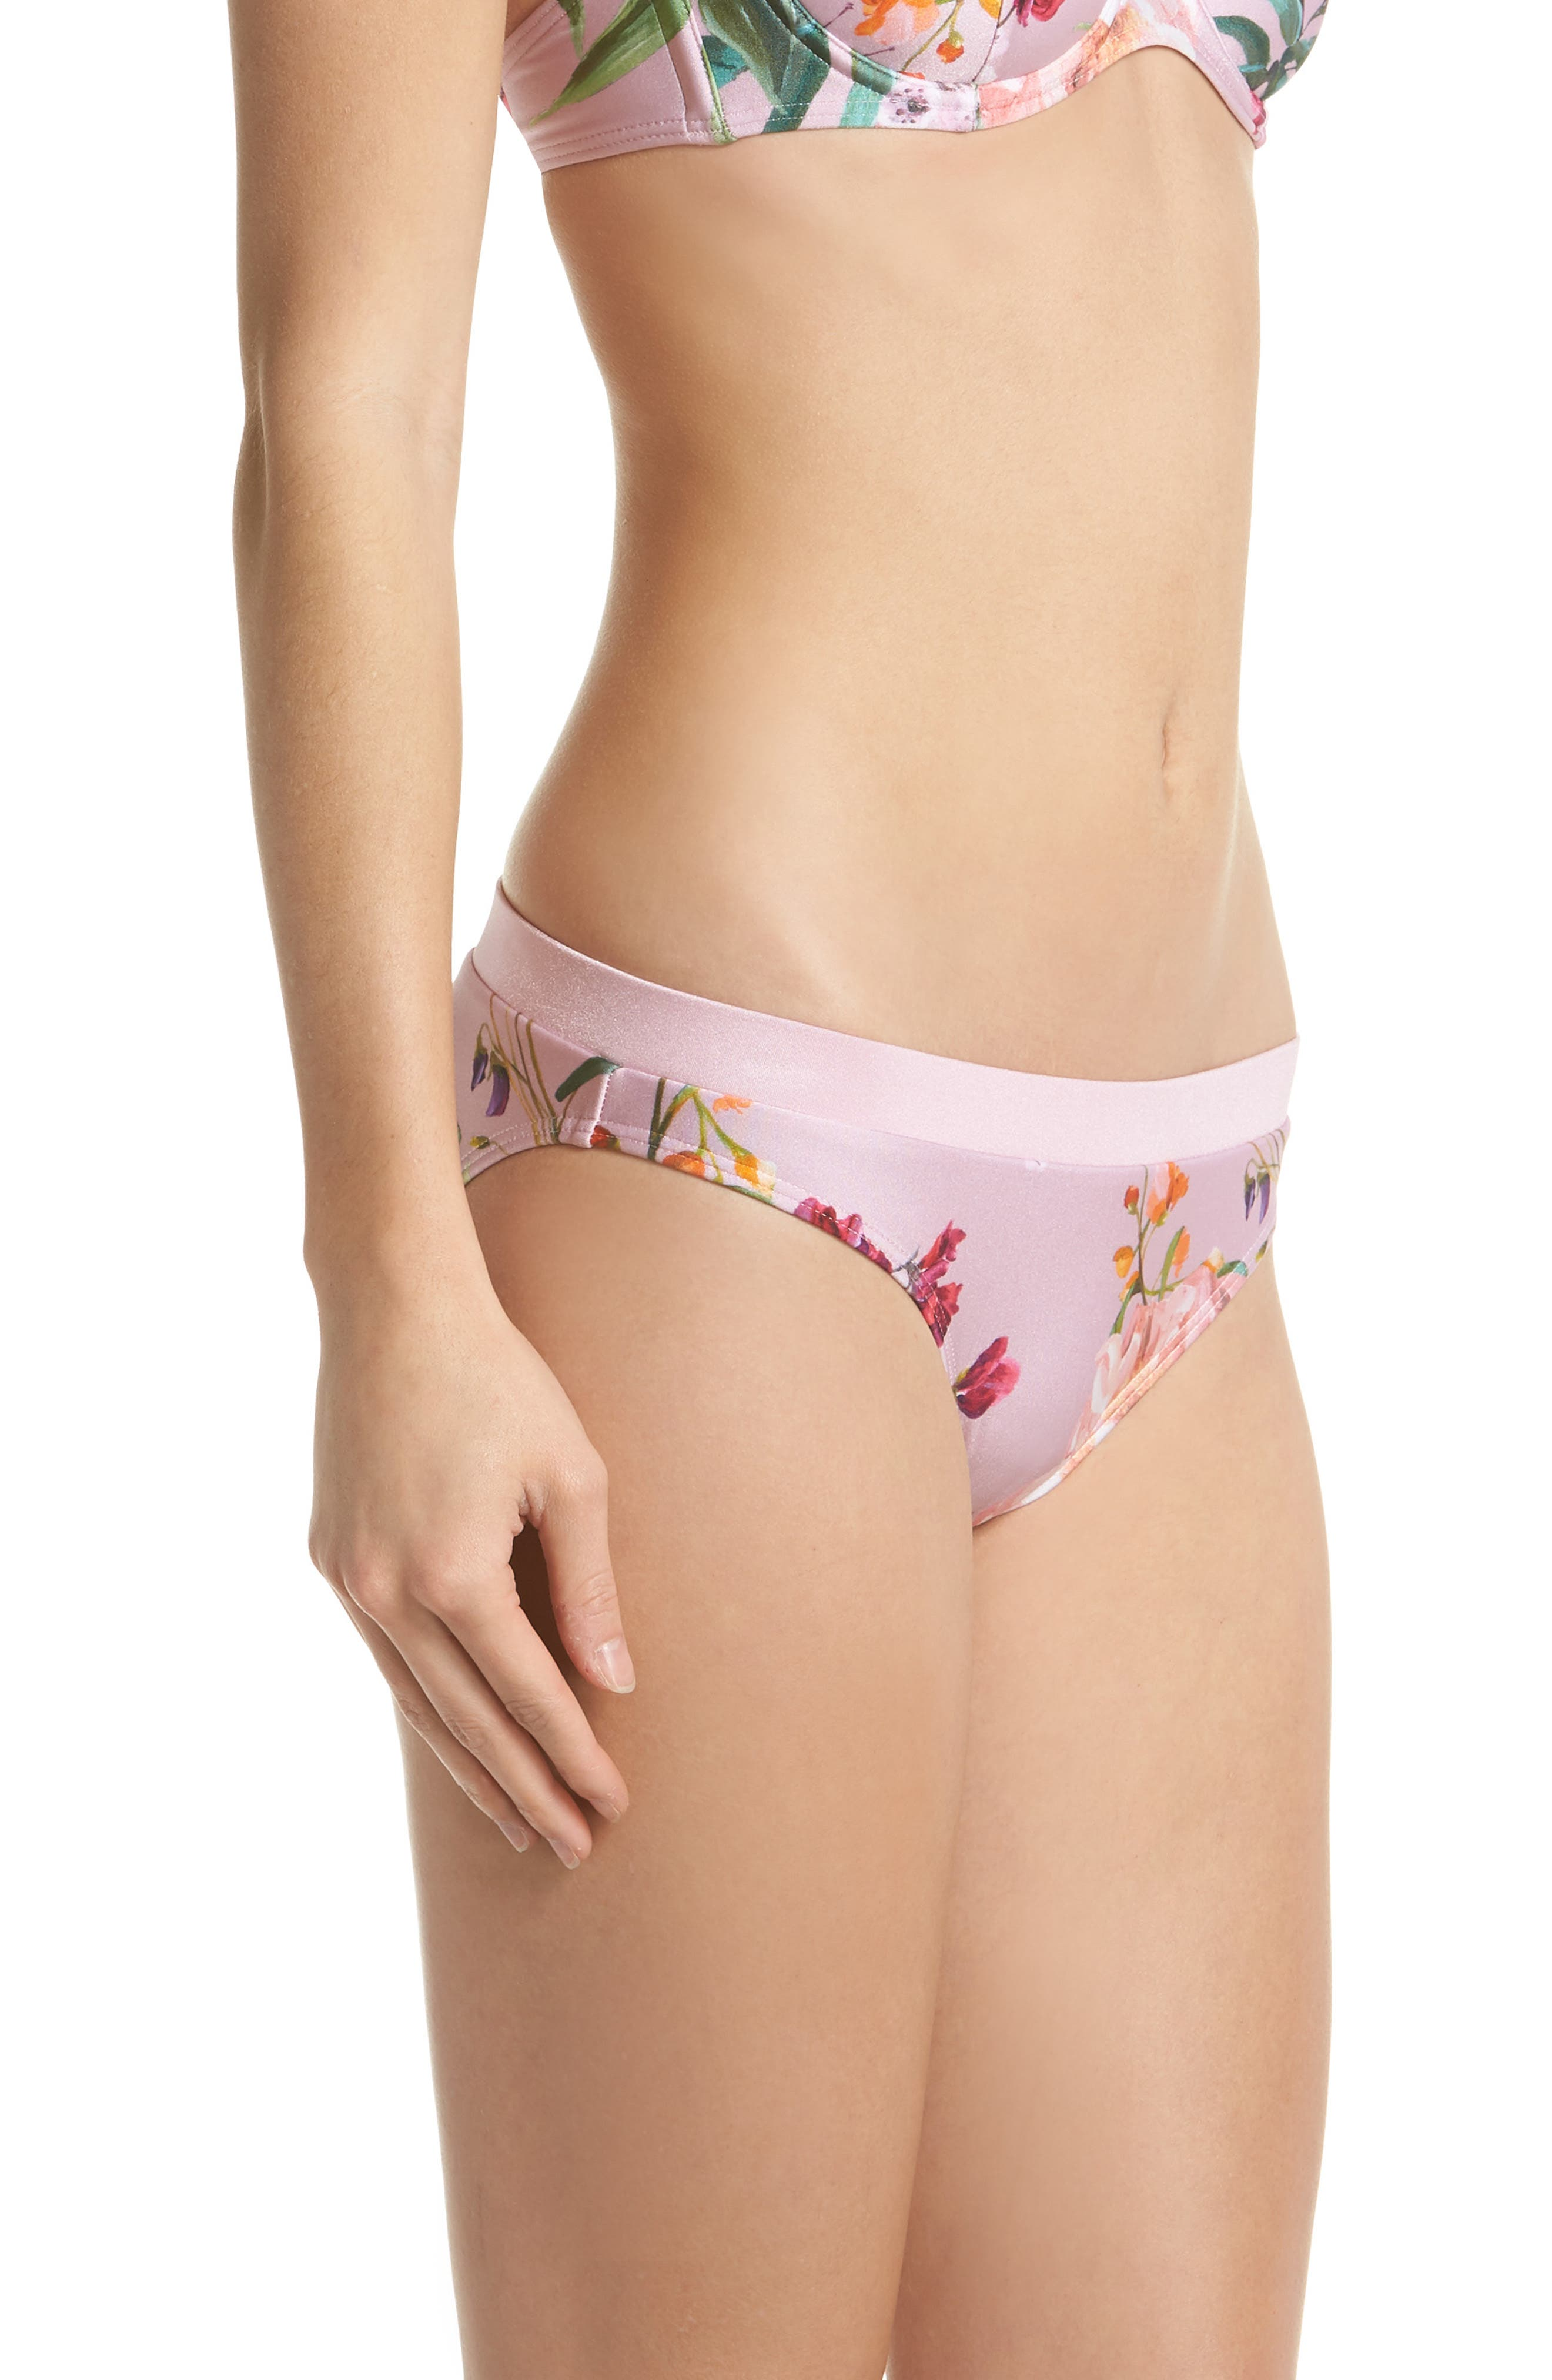 Serenity Floral Bikini Bottoms,                             Alternate thumbnail 3, color,                             Pale Pink